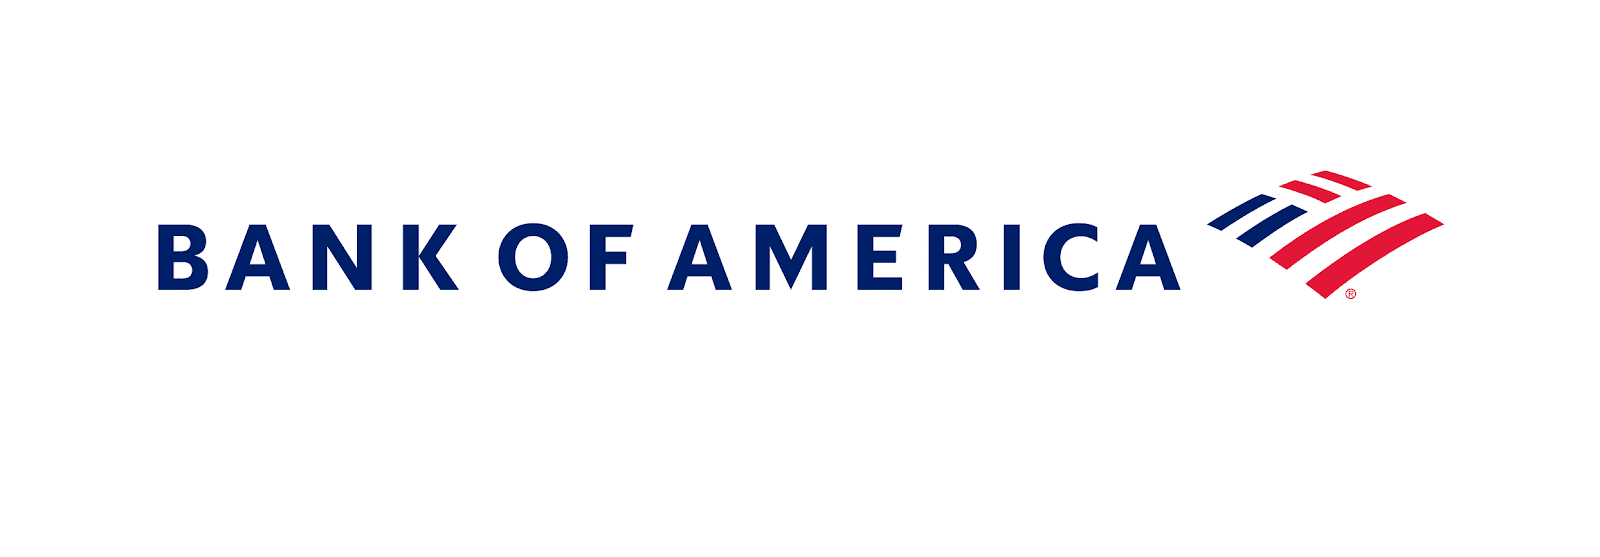 Bank Of America Is One Of Our Wonderful Community Partners Thanks Boa Bank Of America America Bank Jobs